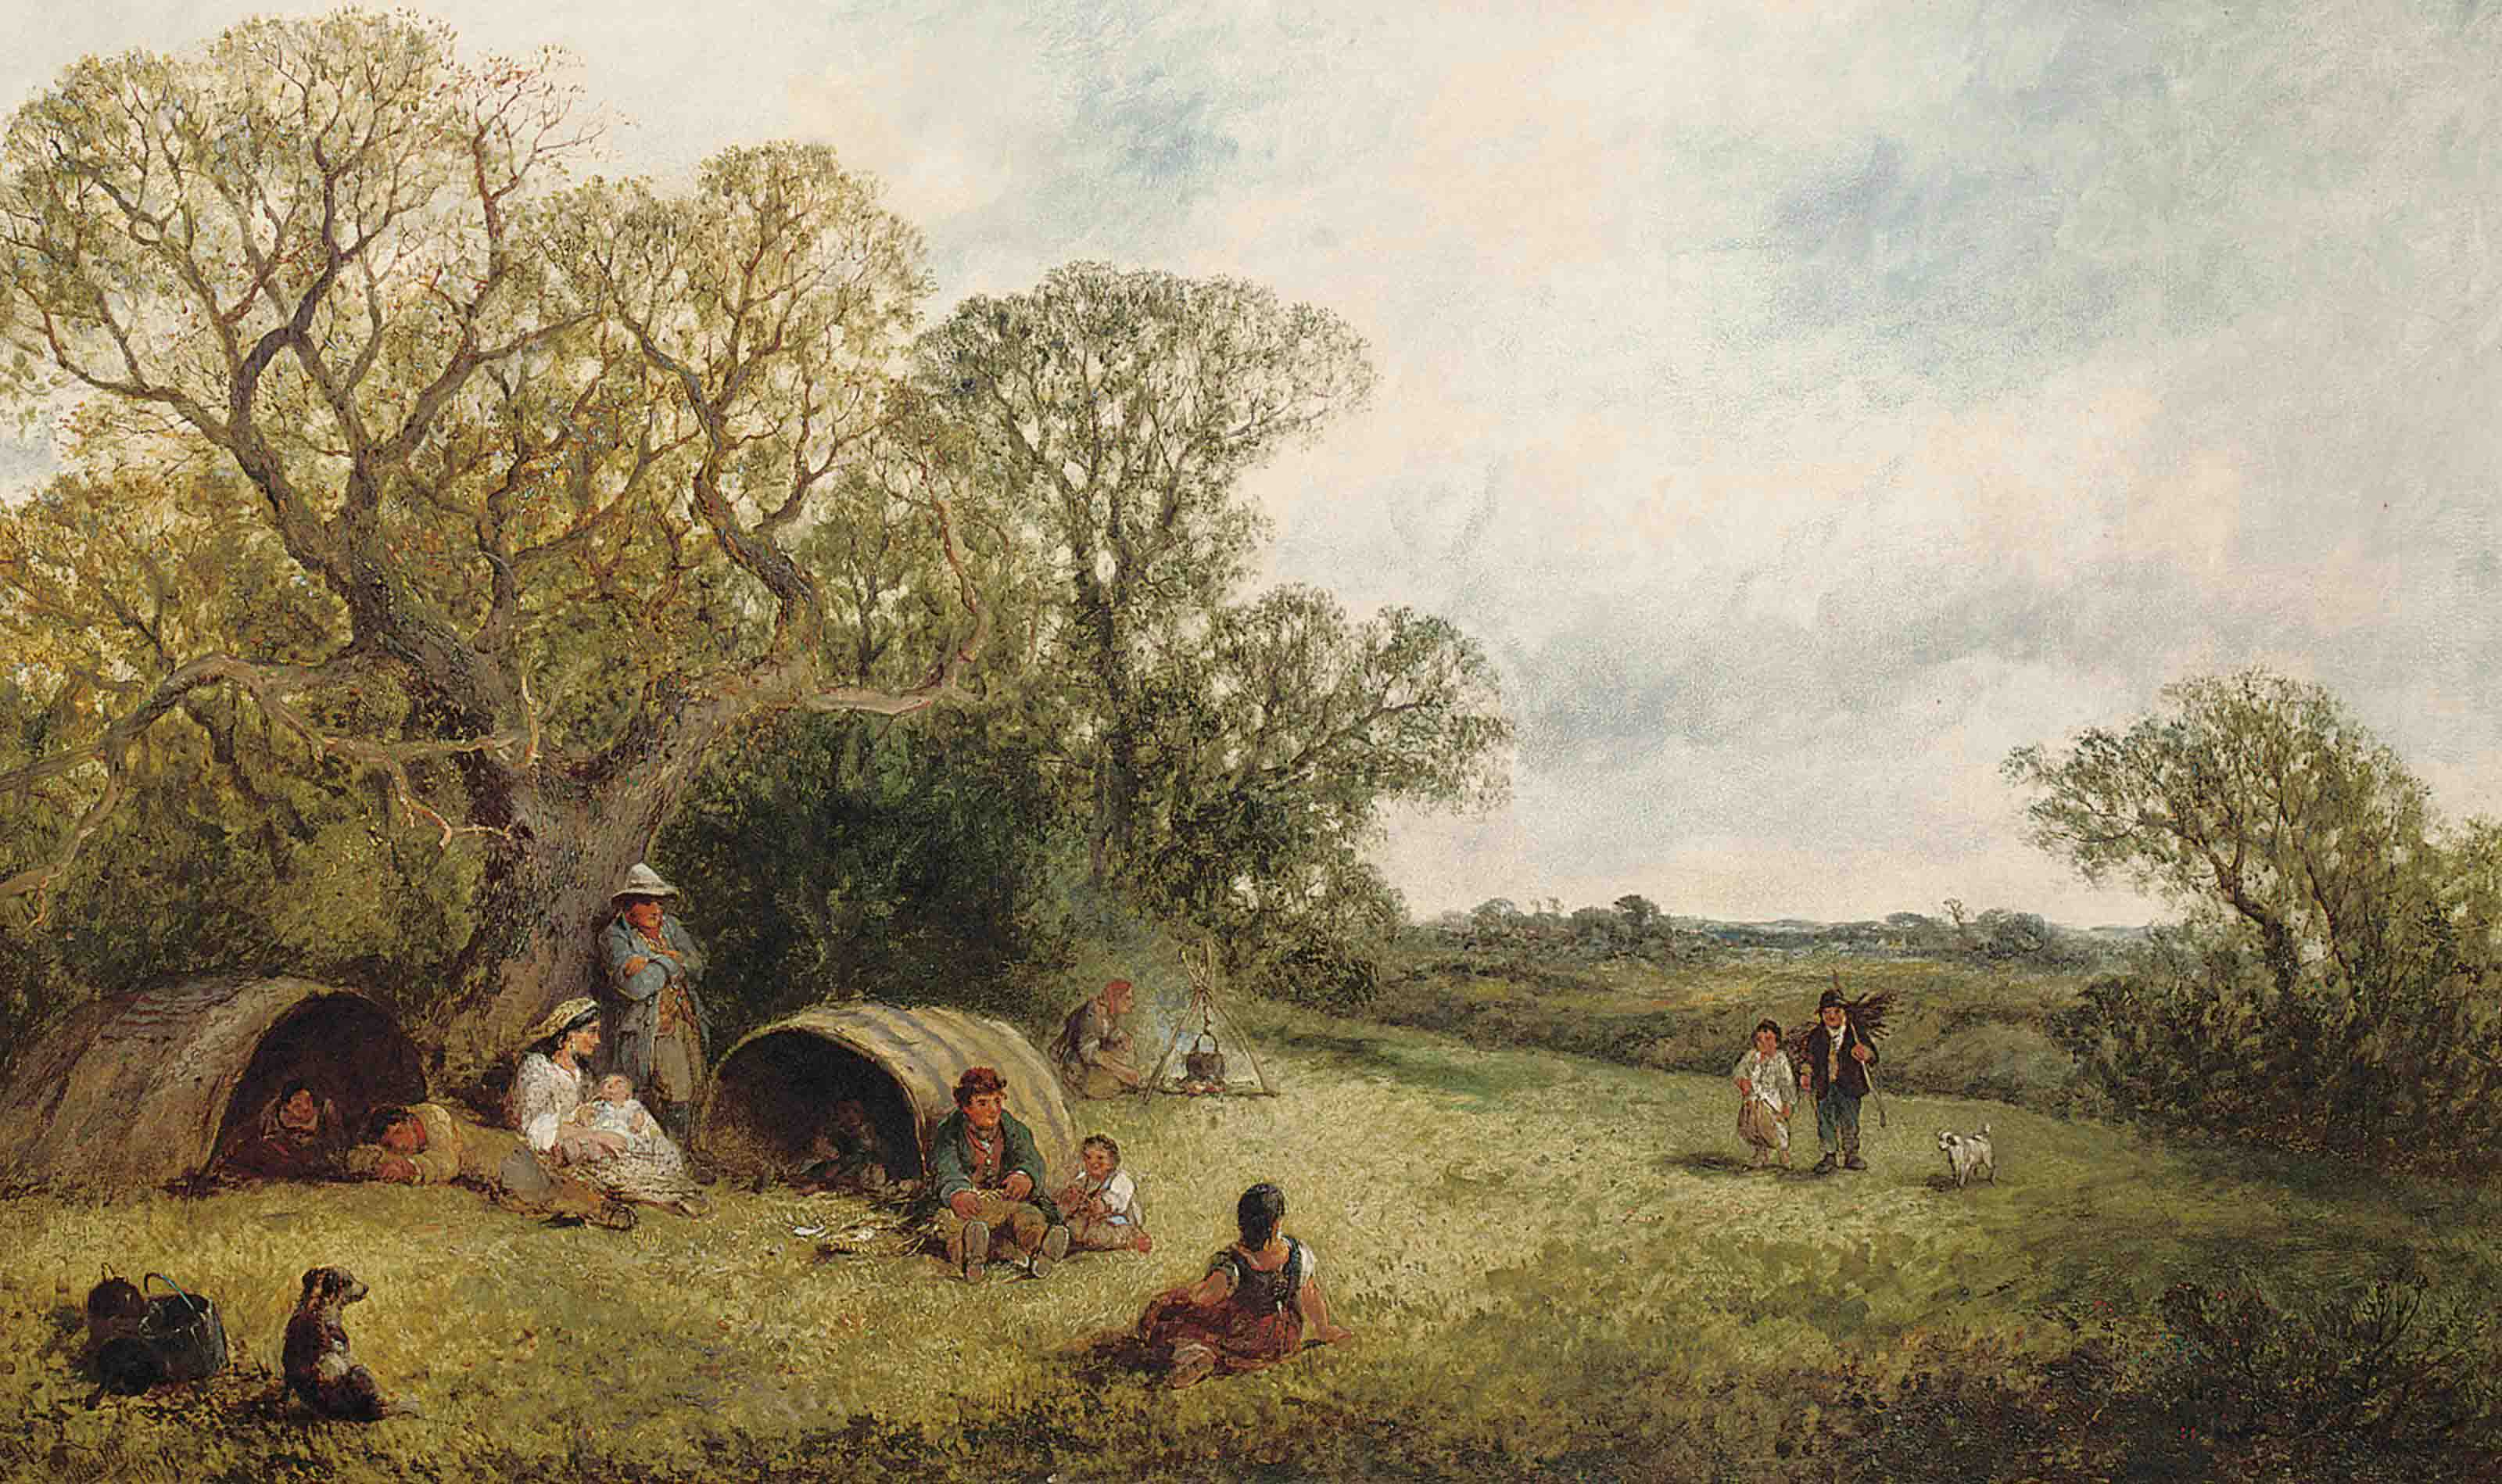 The gypsy encampment